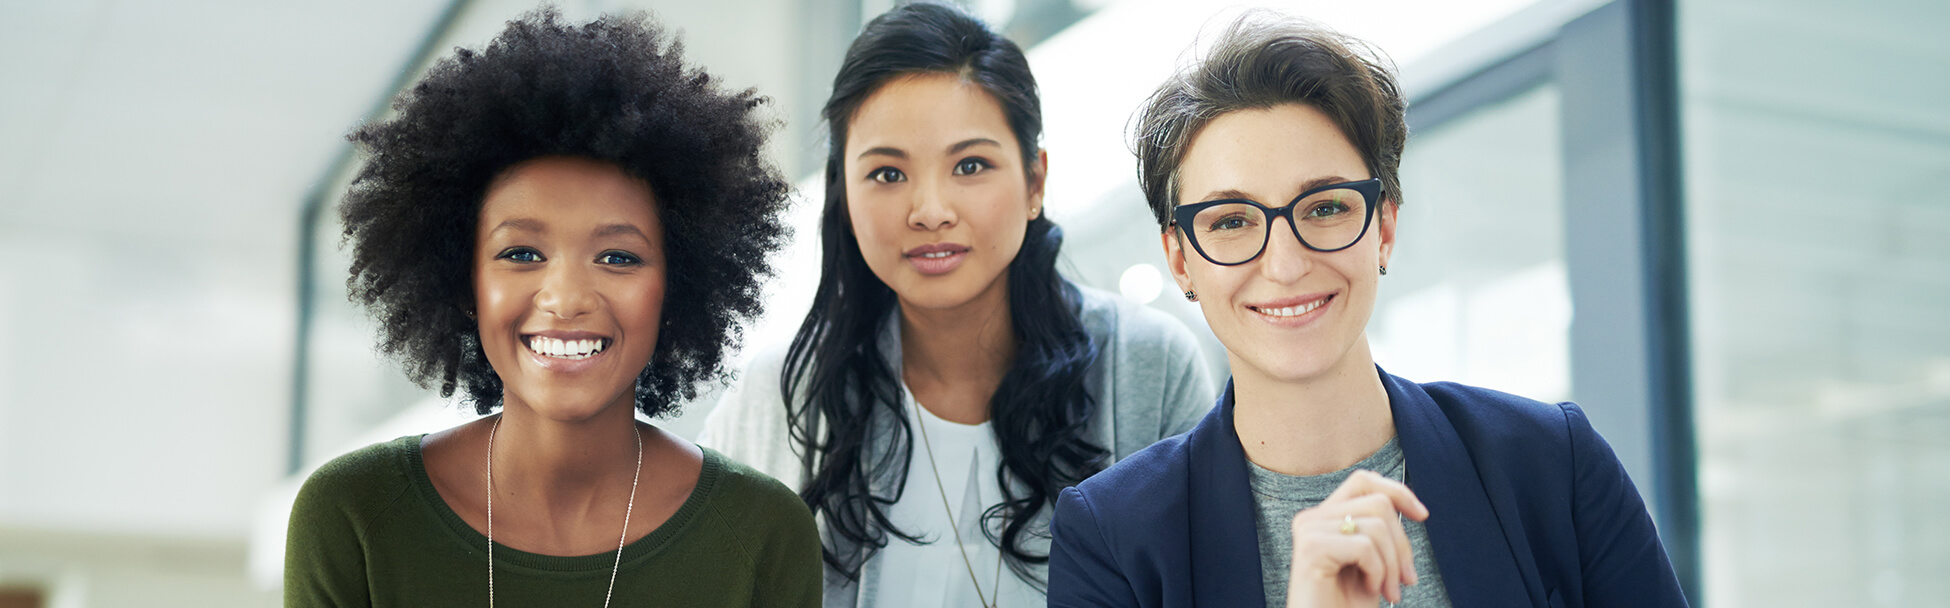 Three smiling racially diverse women in a work environment.